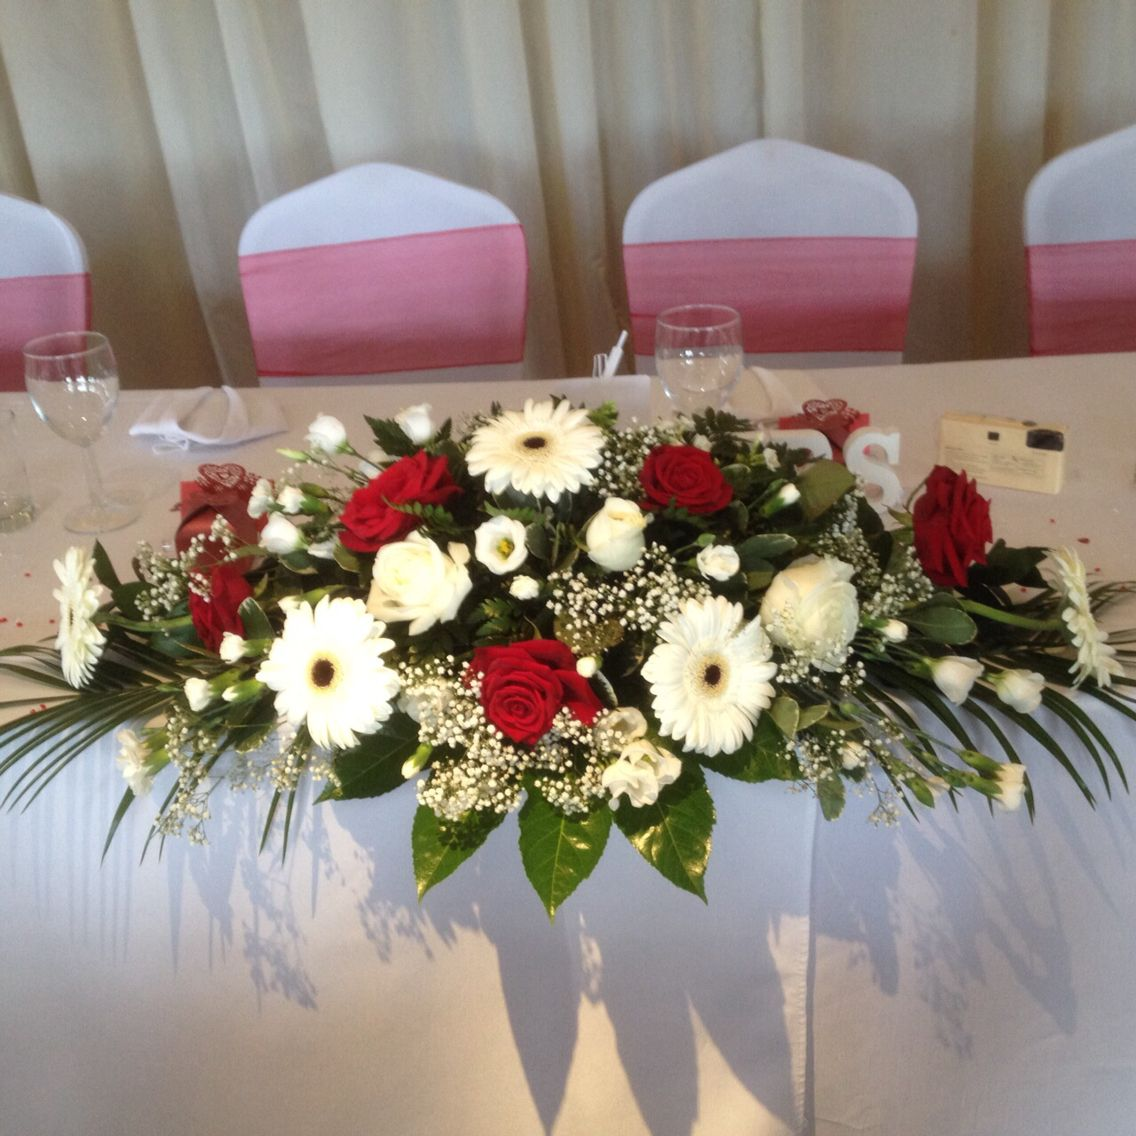 Wedding Head Table Flowers: Top Table Arrangement In Roses And Gerbera Red And White